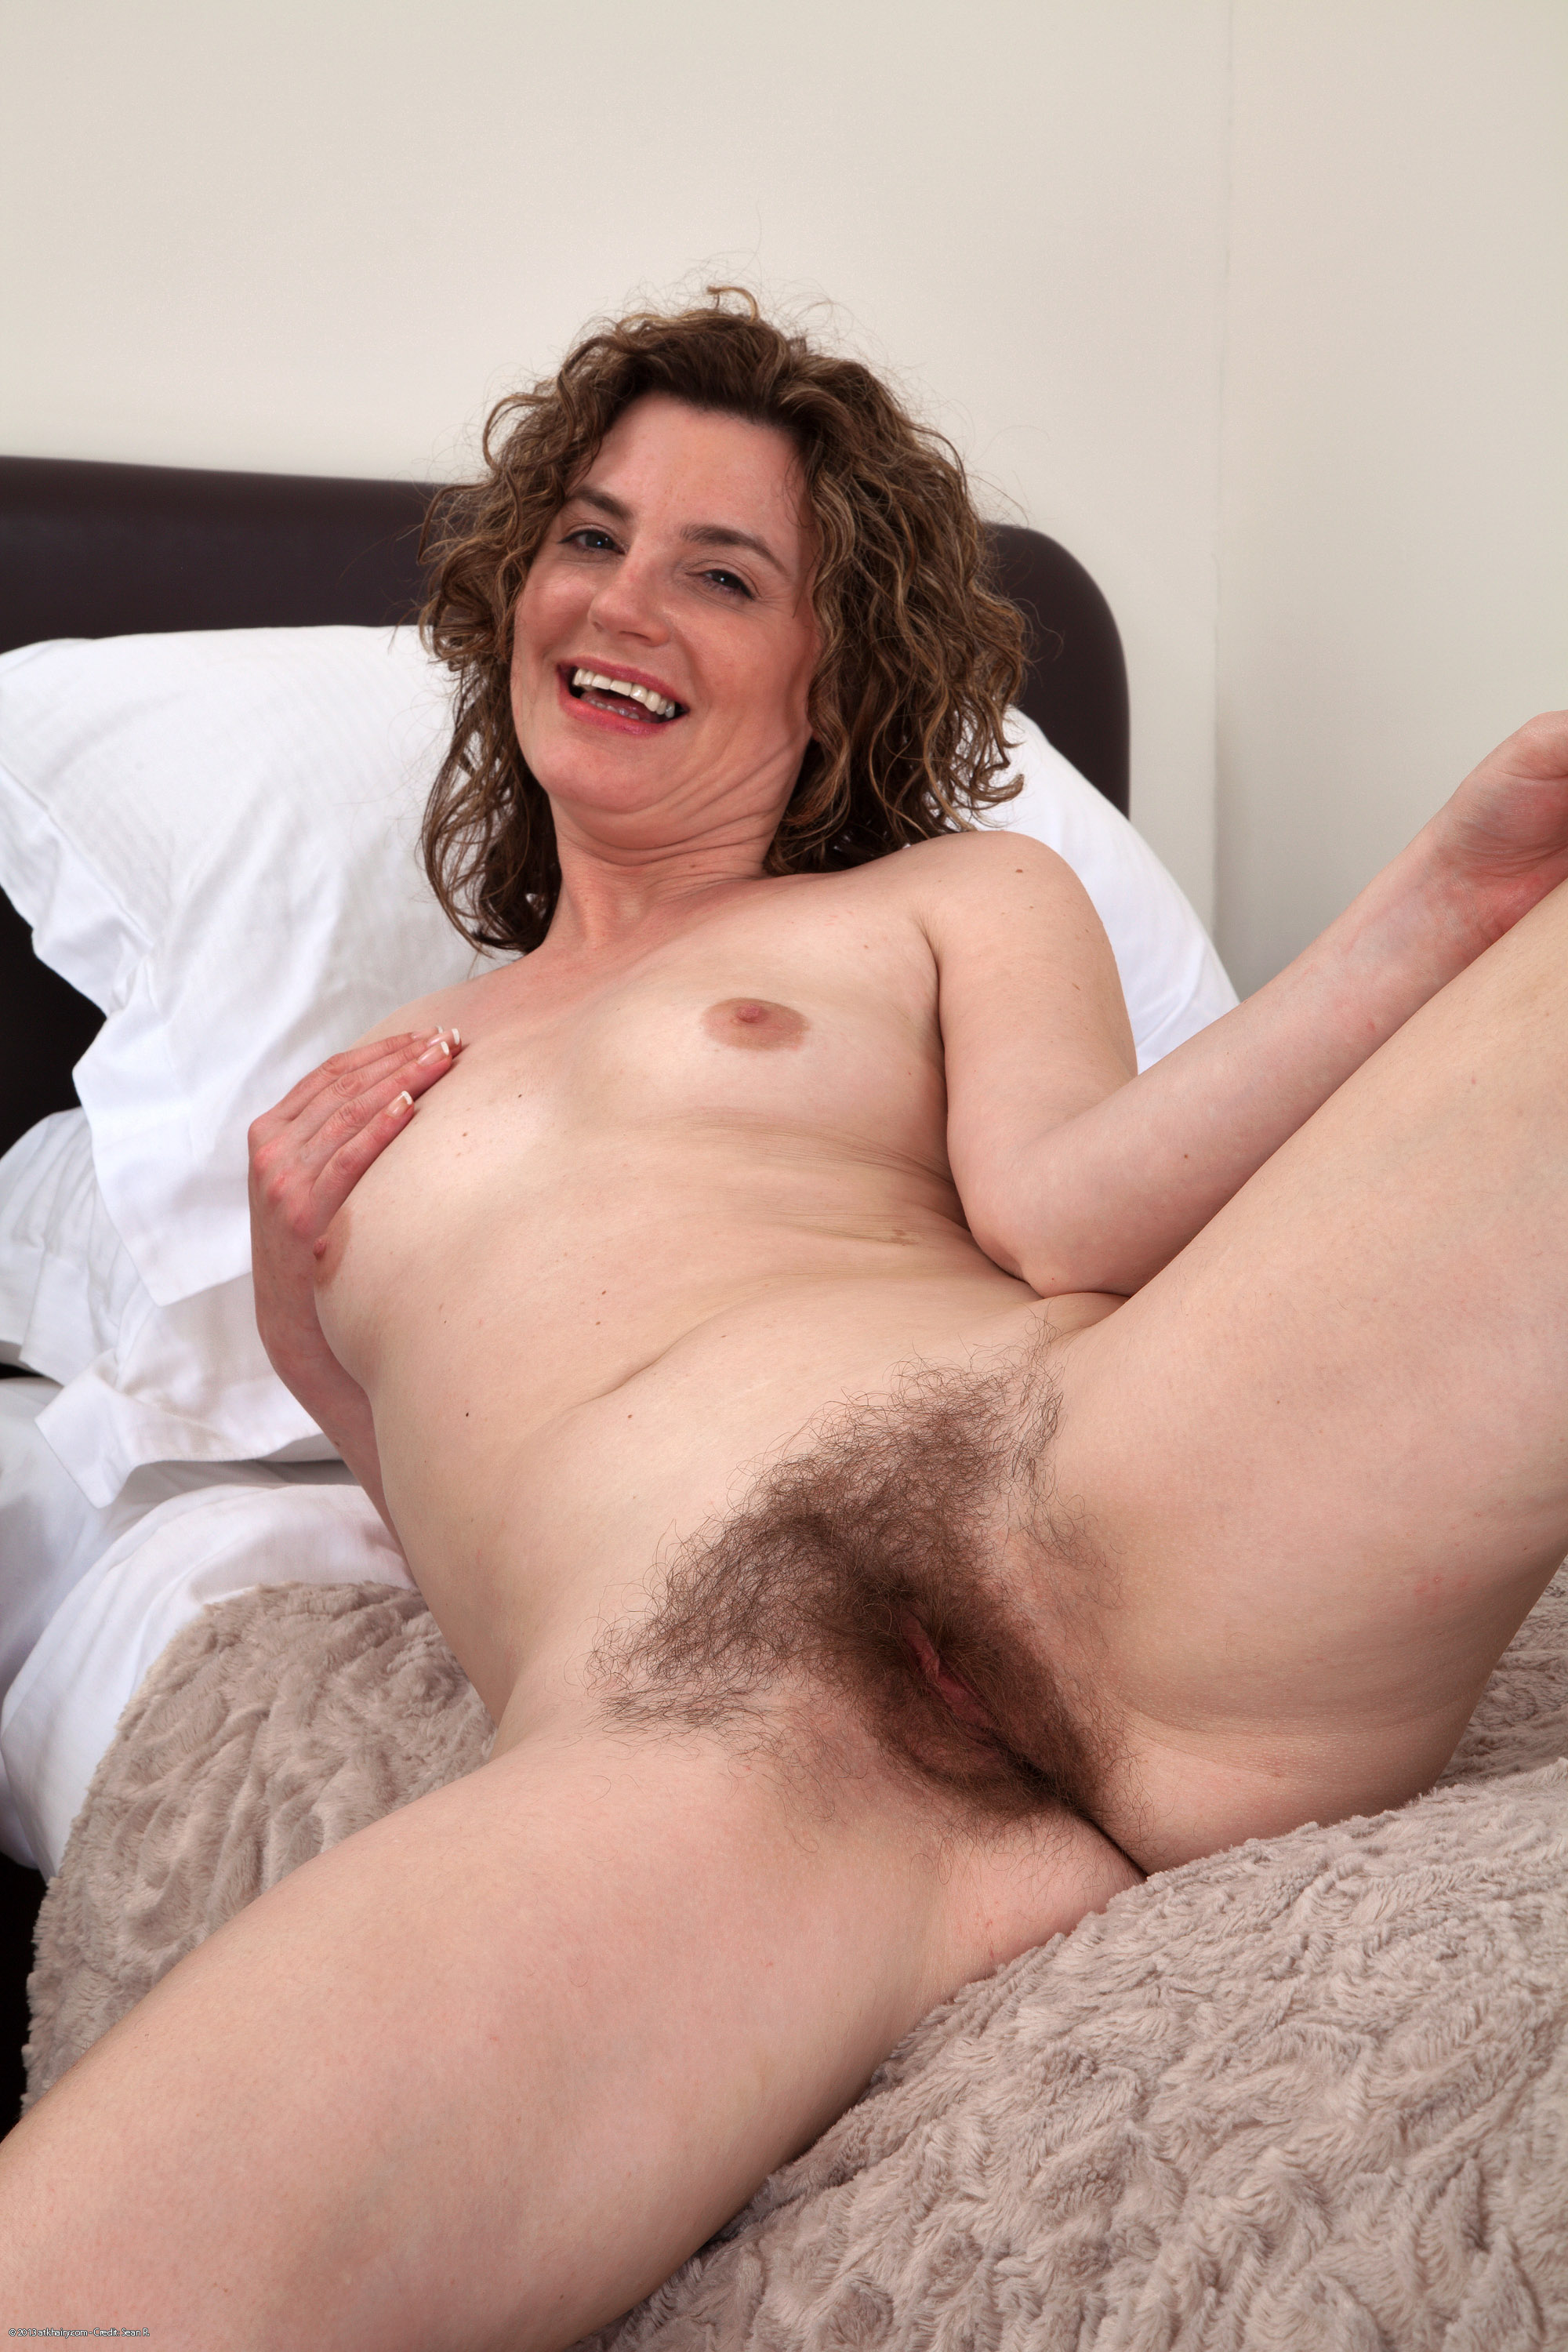 Something Naked hairy bush women exclusively your